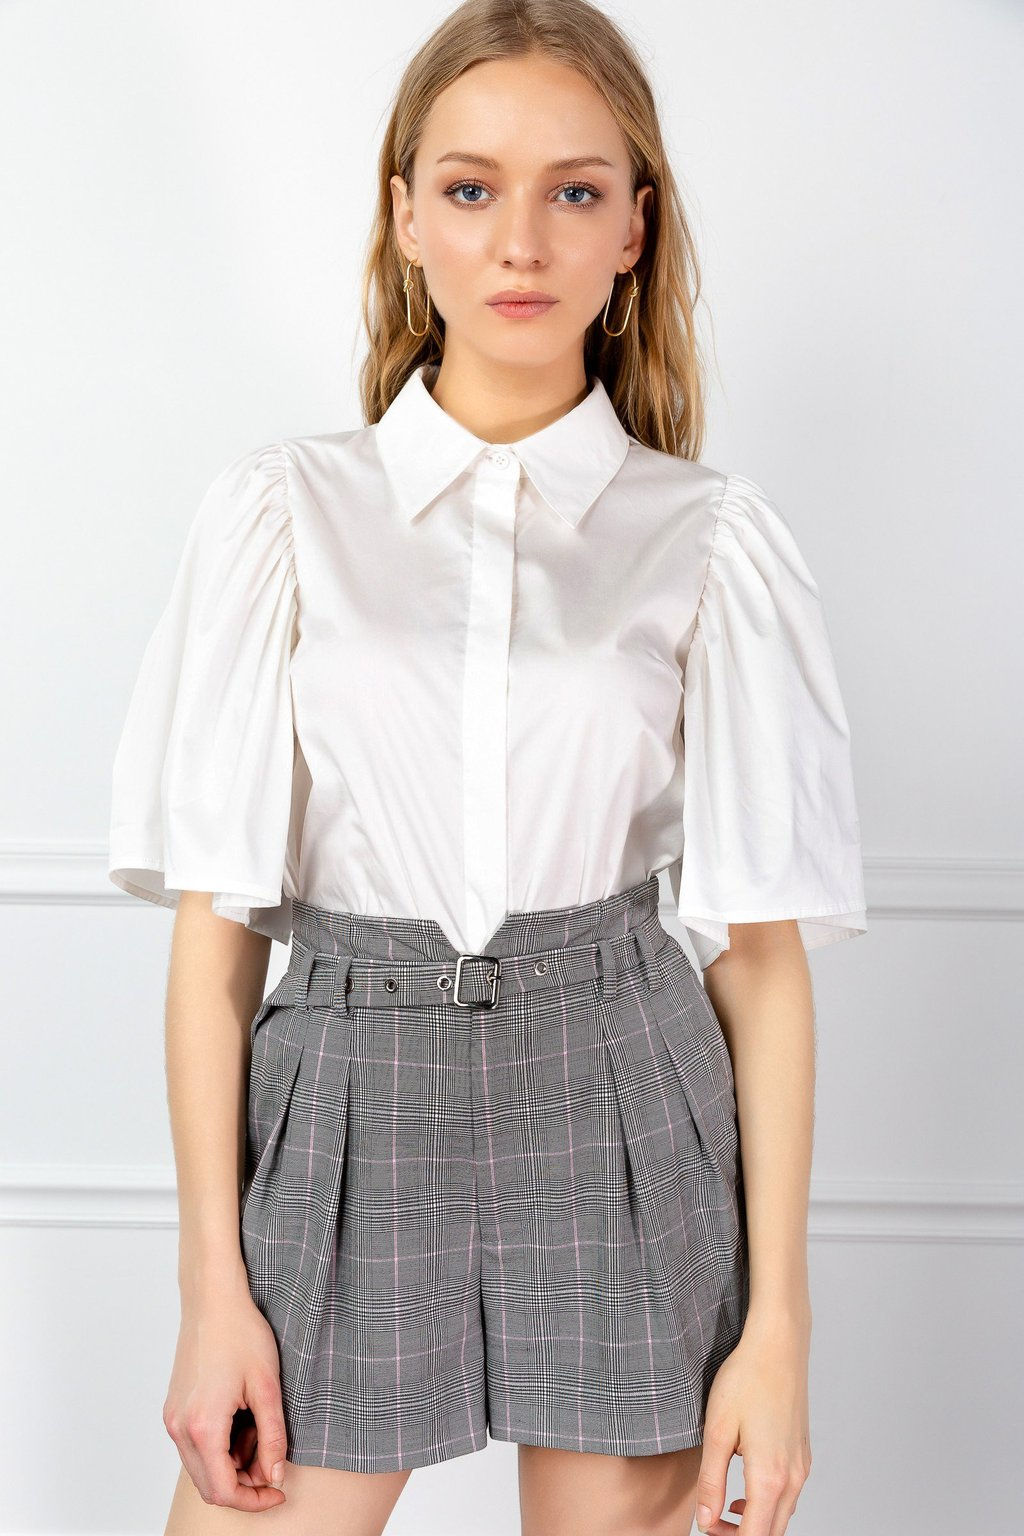 White Lecture Shirt by J.ING LA Women's fashion